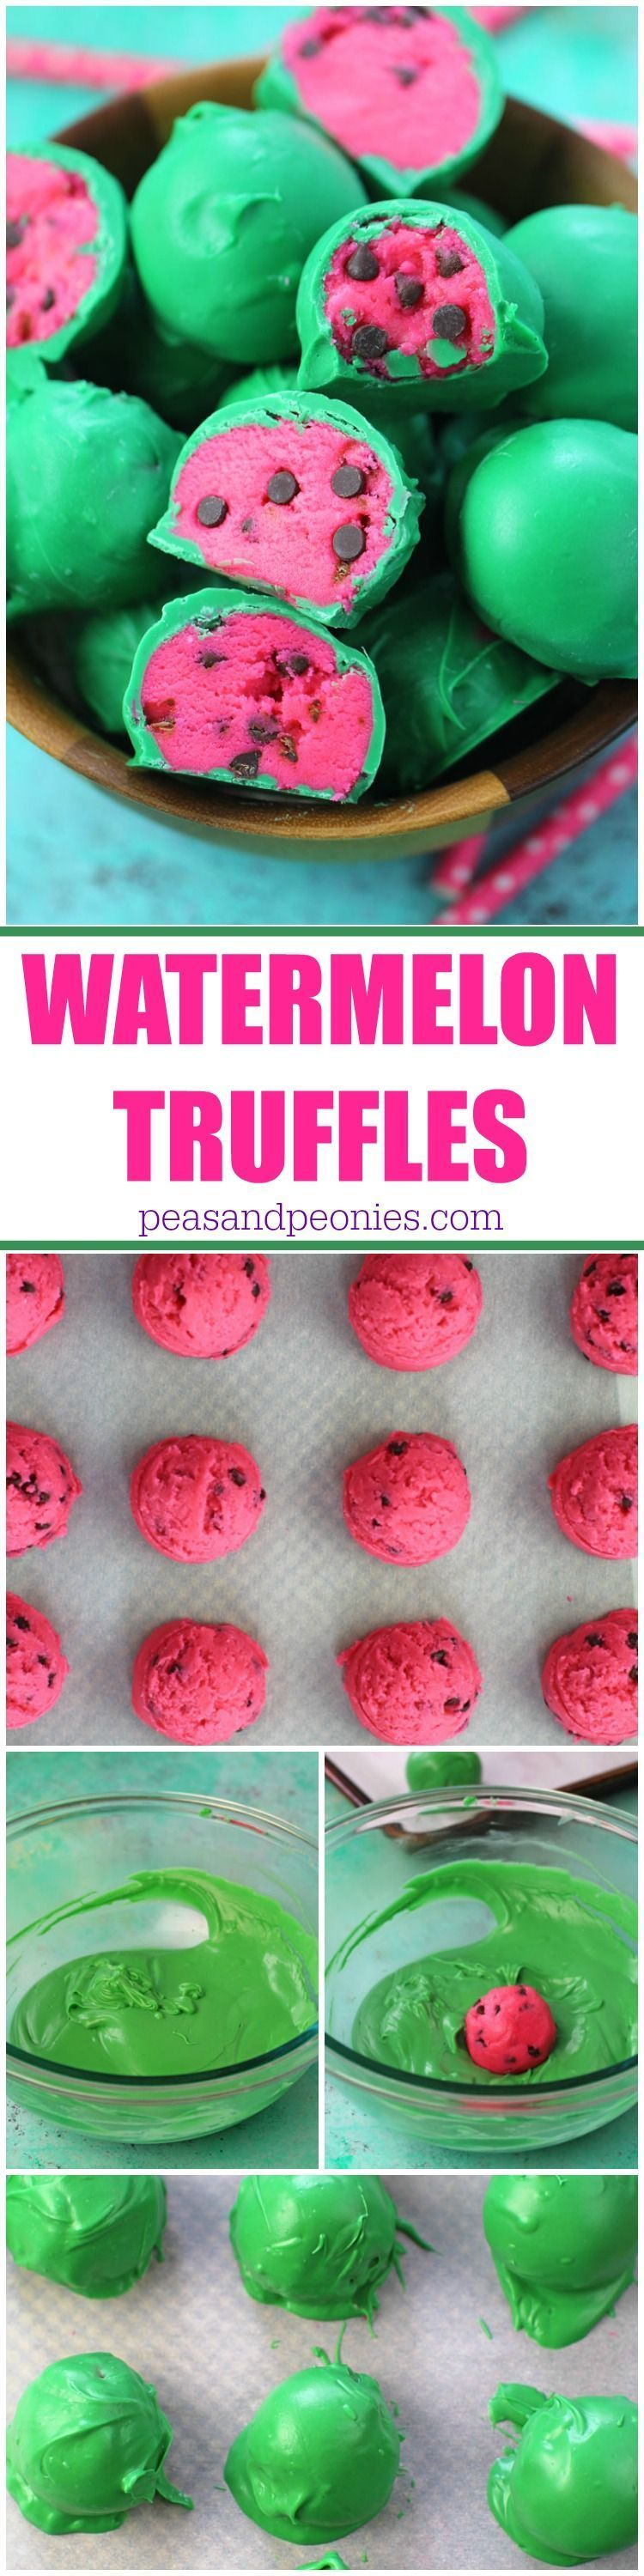 Watermelon Truffles are a fun, tasty and colorful summer treat. Easy to make, with just a few ingredients, these are perfect to brighten your day.